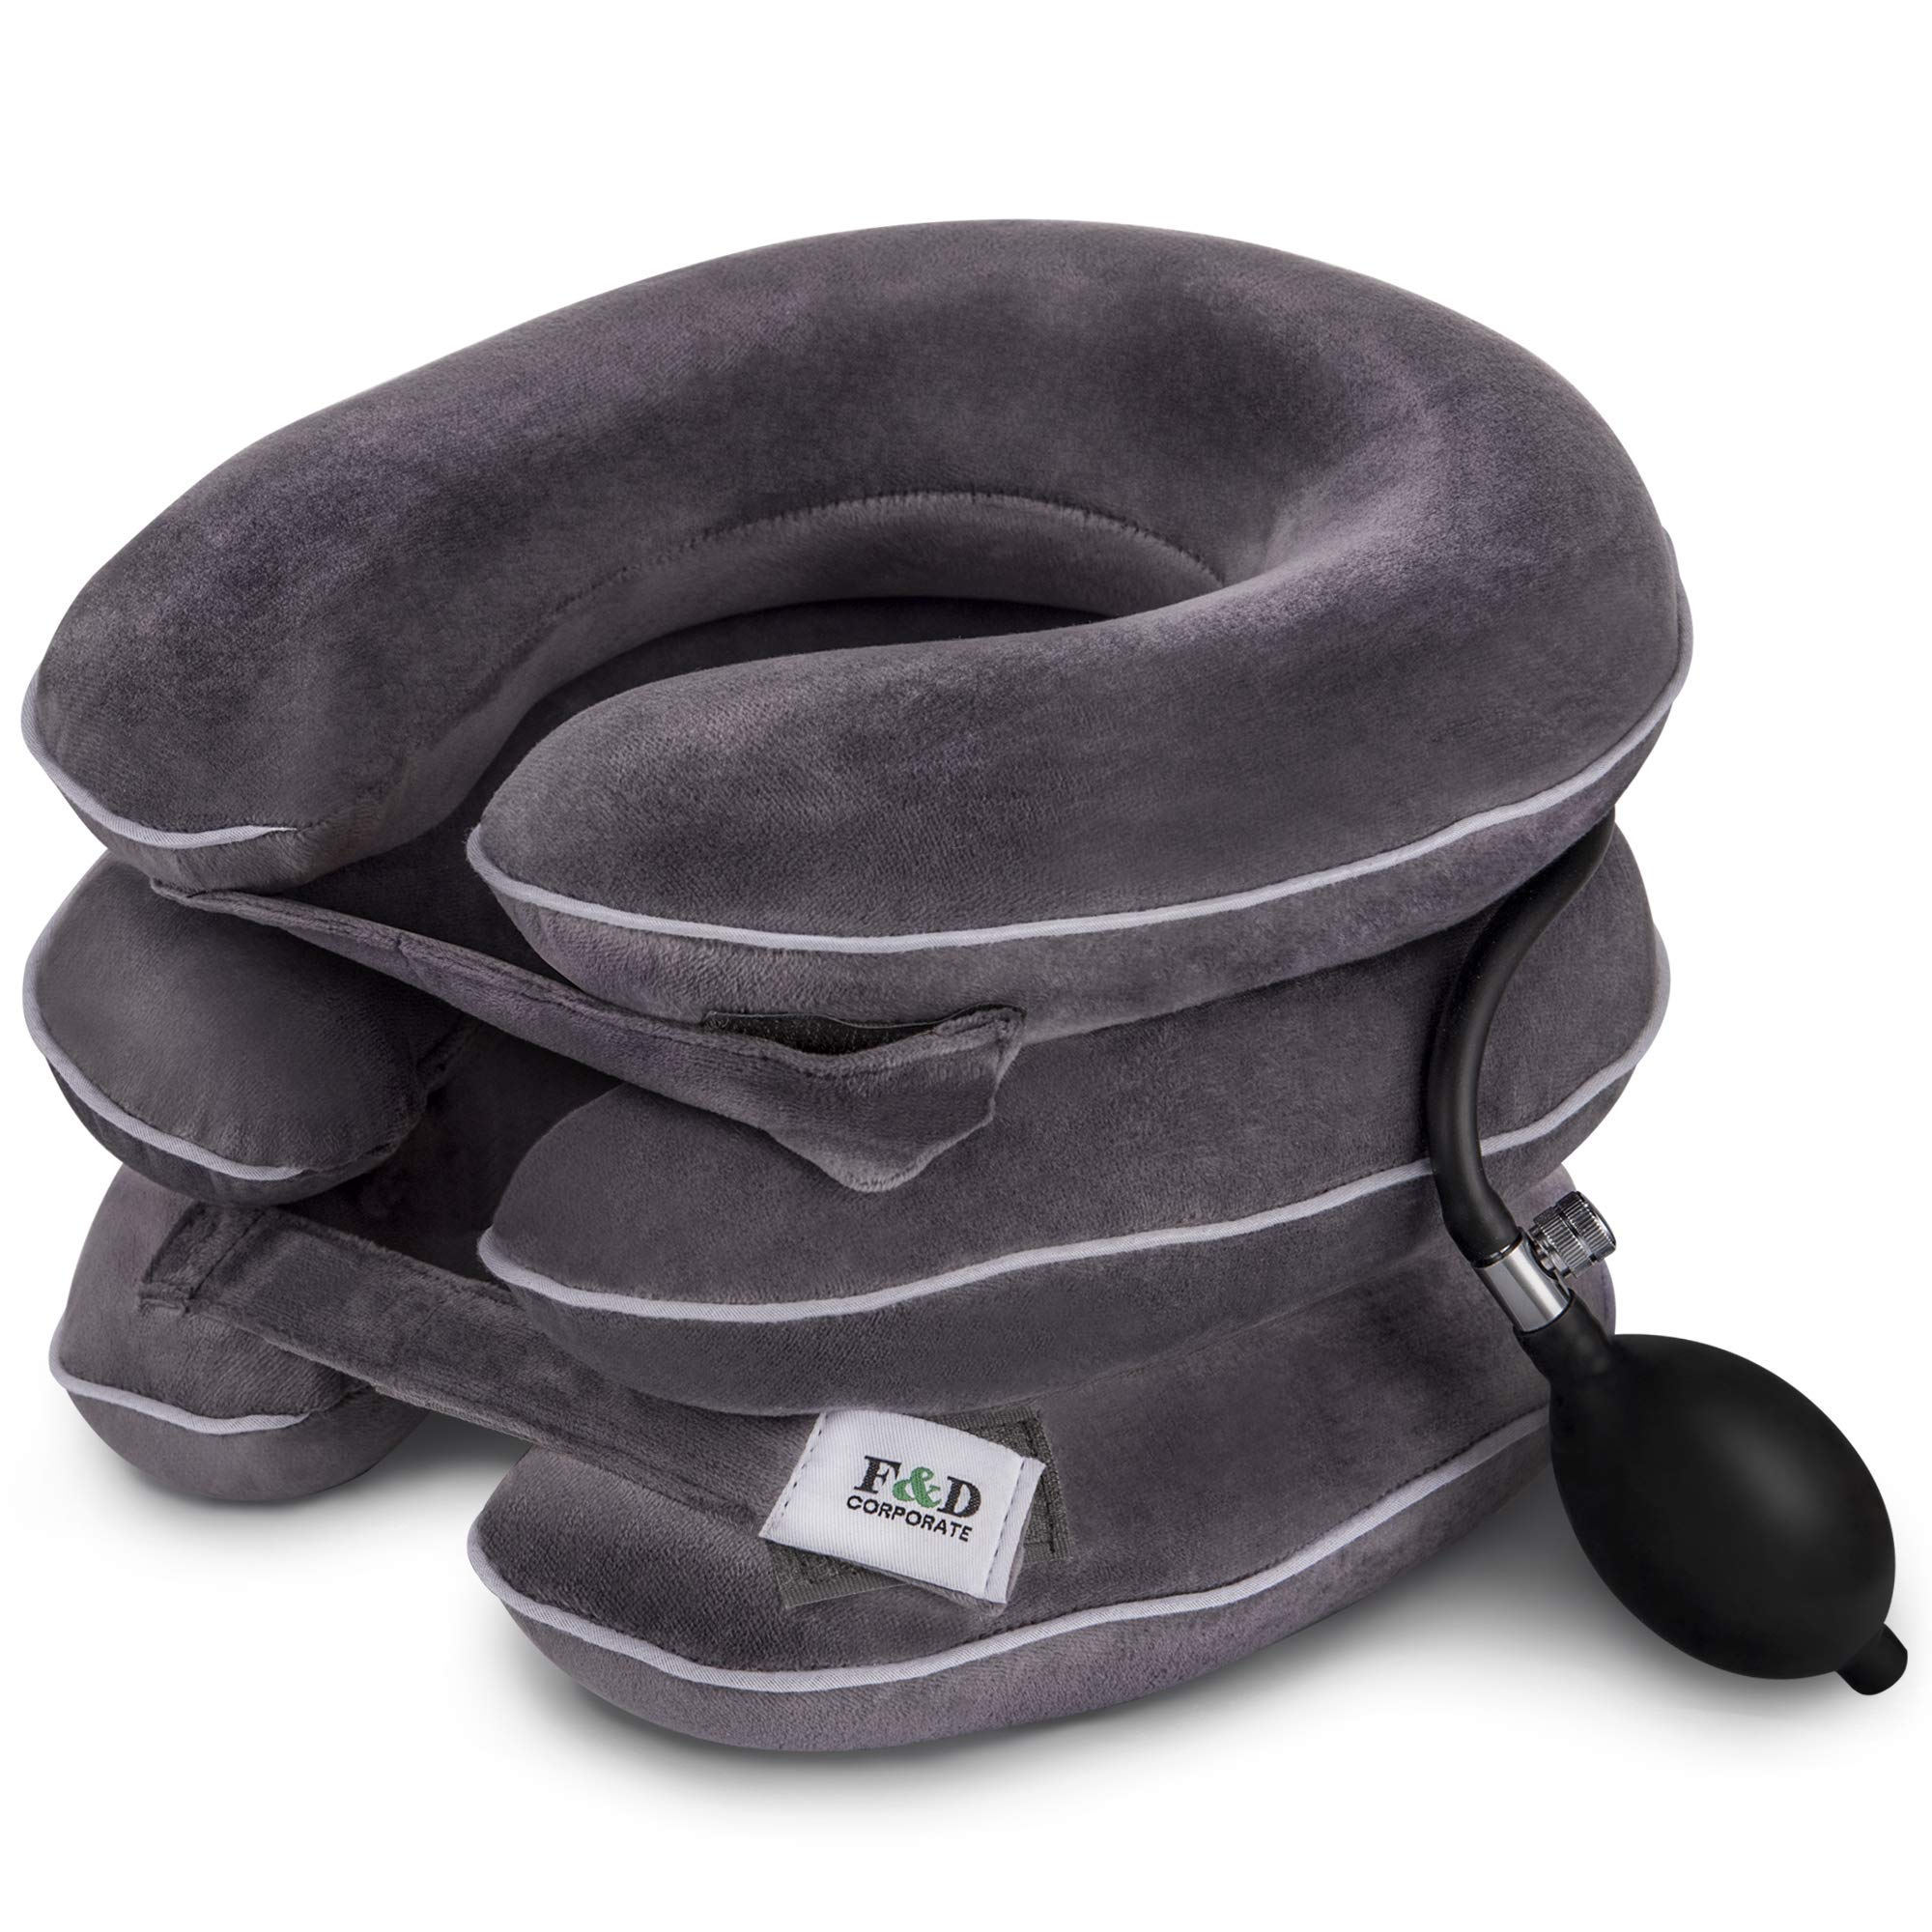 Best Cervical Neck Traction Device - Neck Stretcher - Cervical Collar for Decompression - Neck Pain Relief Devices - Inflatable Neck Brace Pillow Gray by F&D